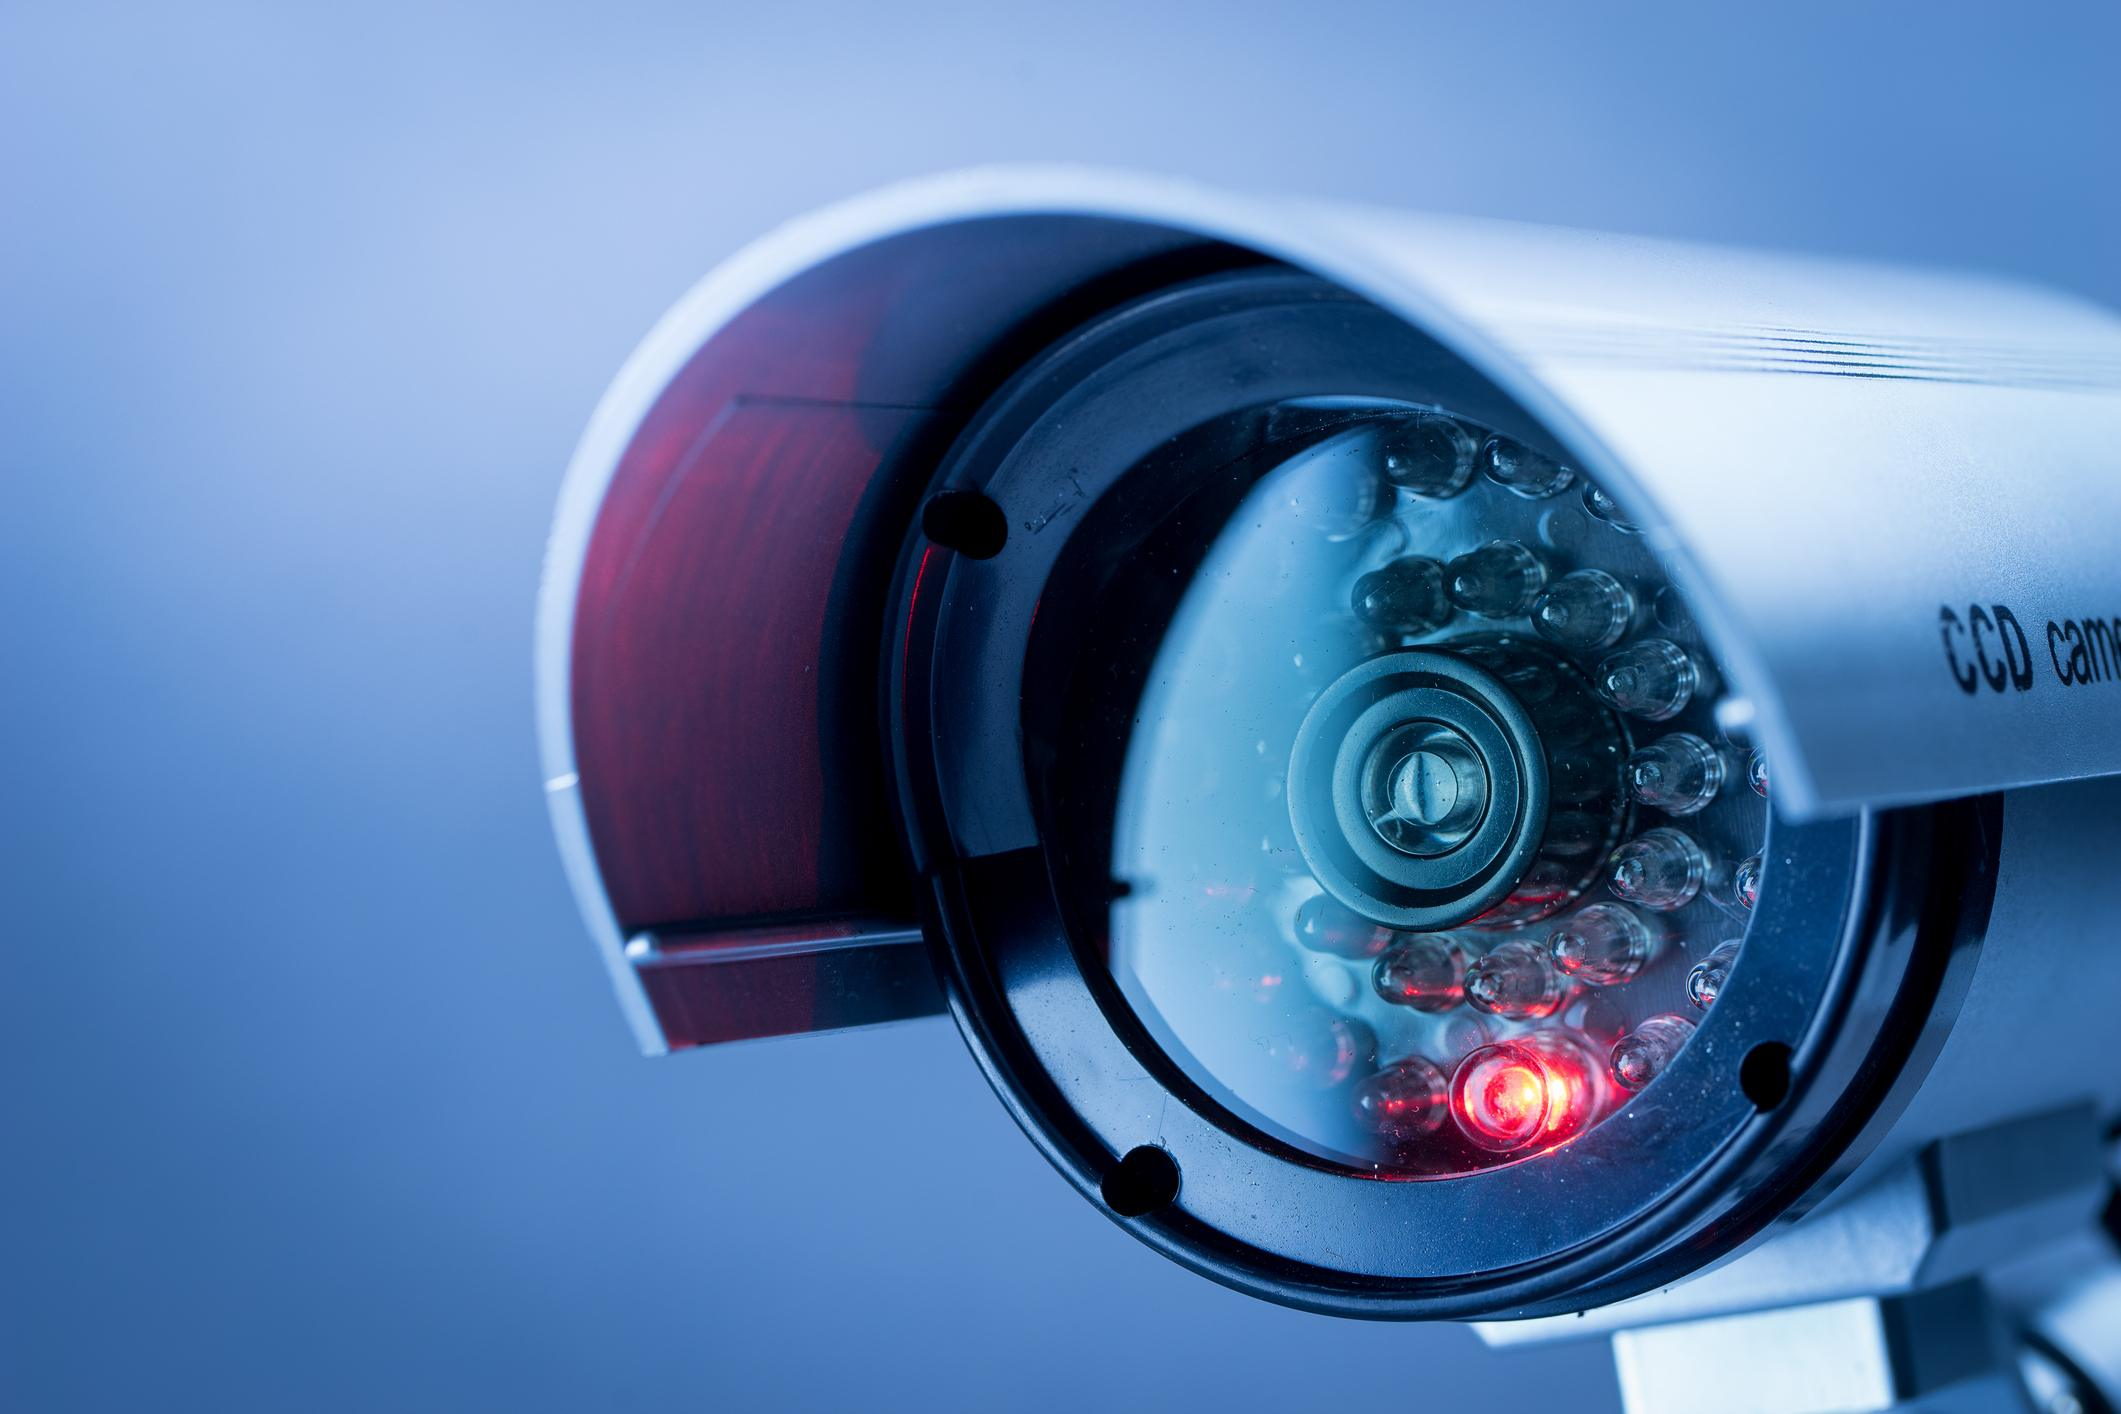 Security, CCTV camera for office building at night in London.